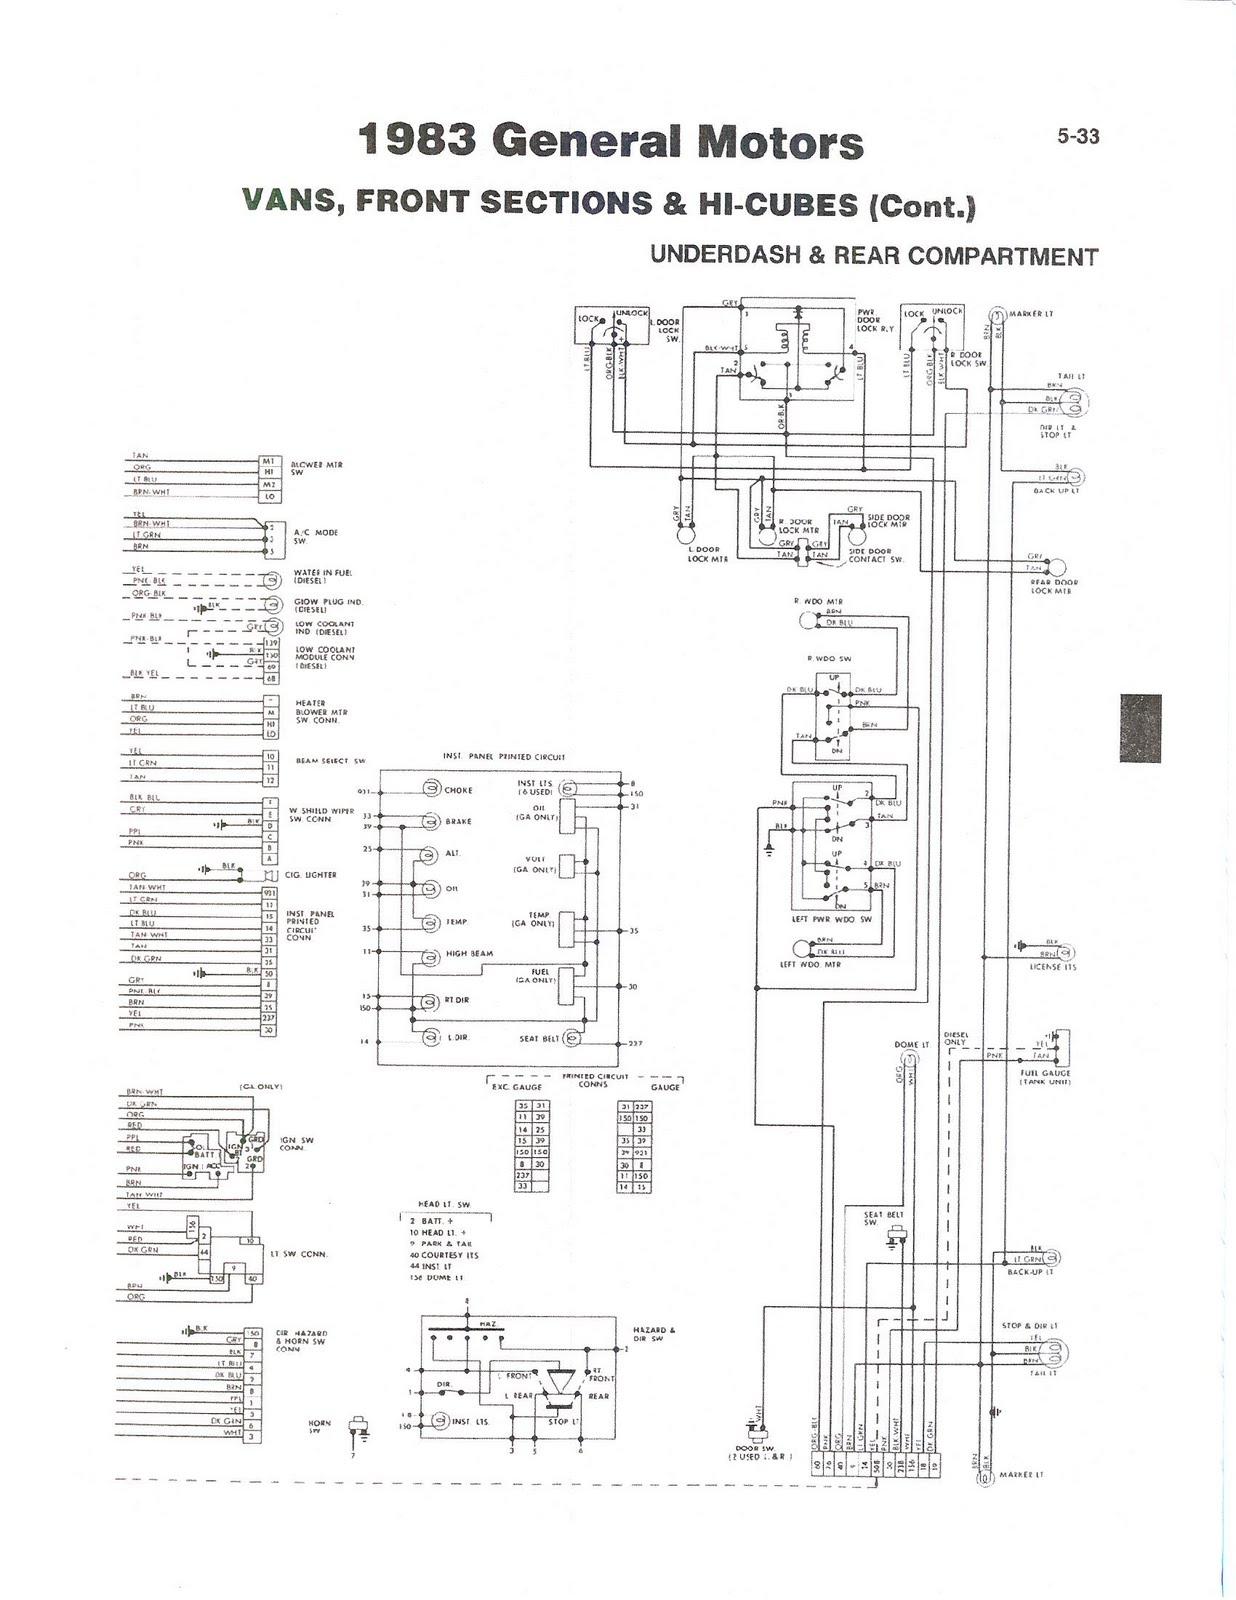 Chevy P30 Fuse Box Great Installation Of Wiring Diagram Gm Van Ecu Nice Place To Get U2022 Rh Usxcleague Com Block Location